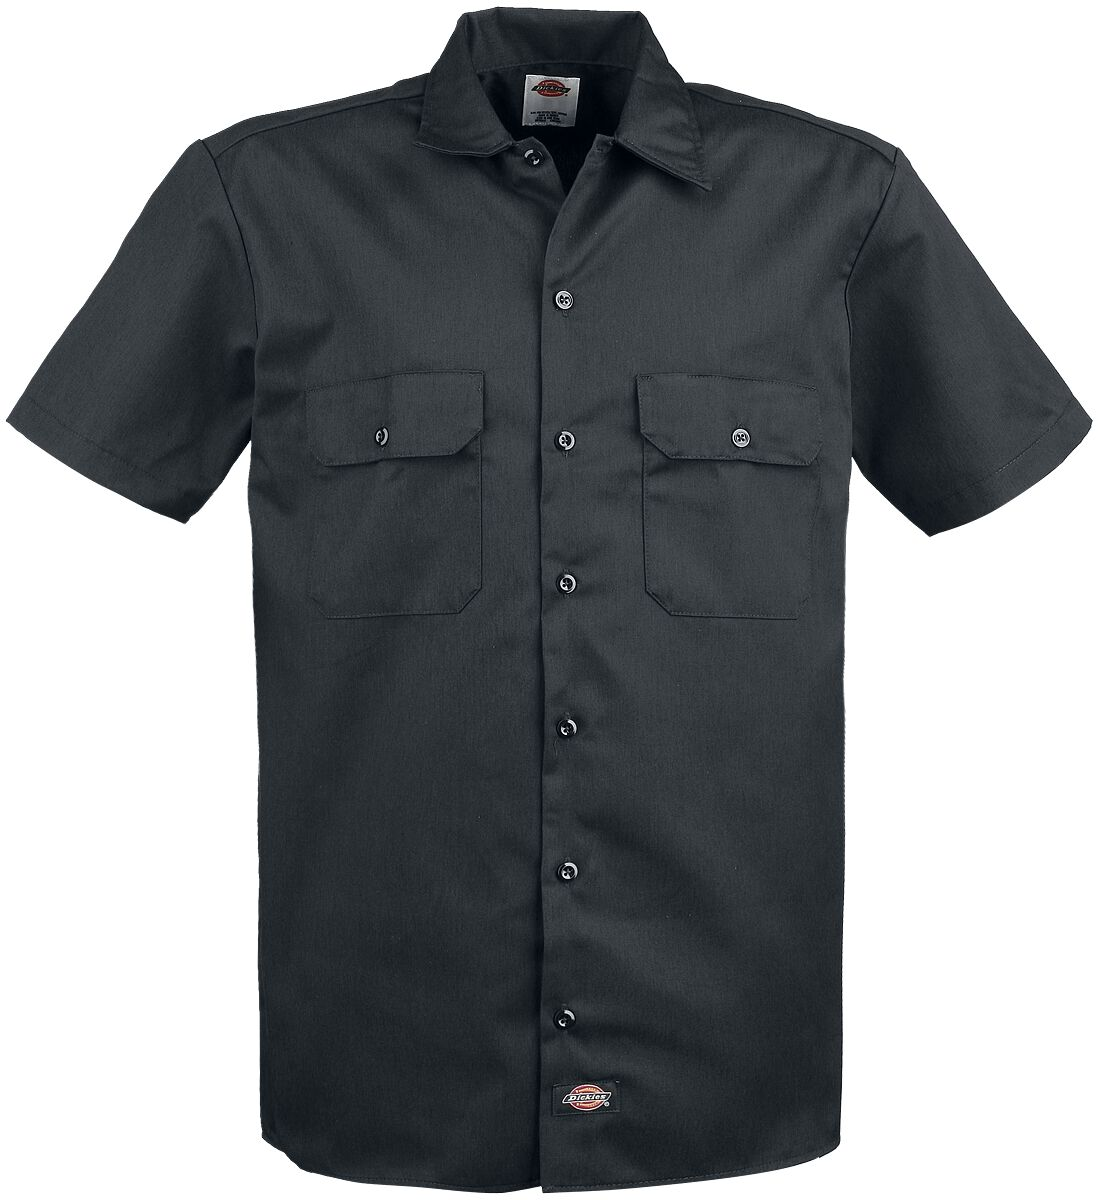 Image of   Dickies Short Sleeve Work Shirt Skjorte sort